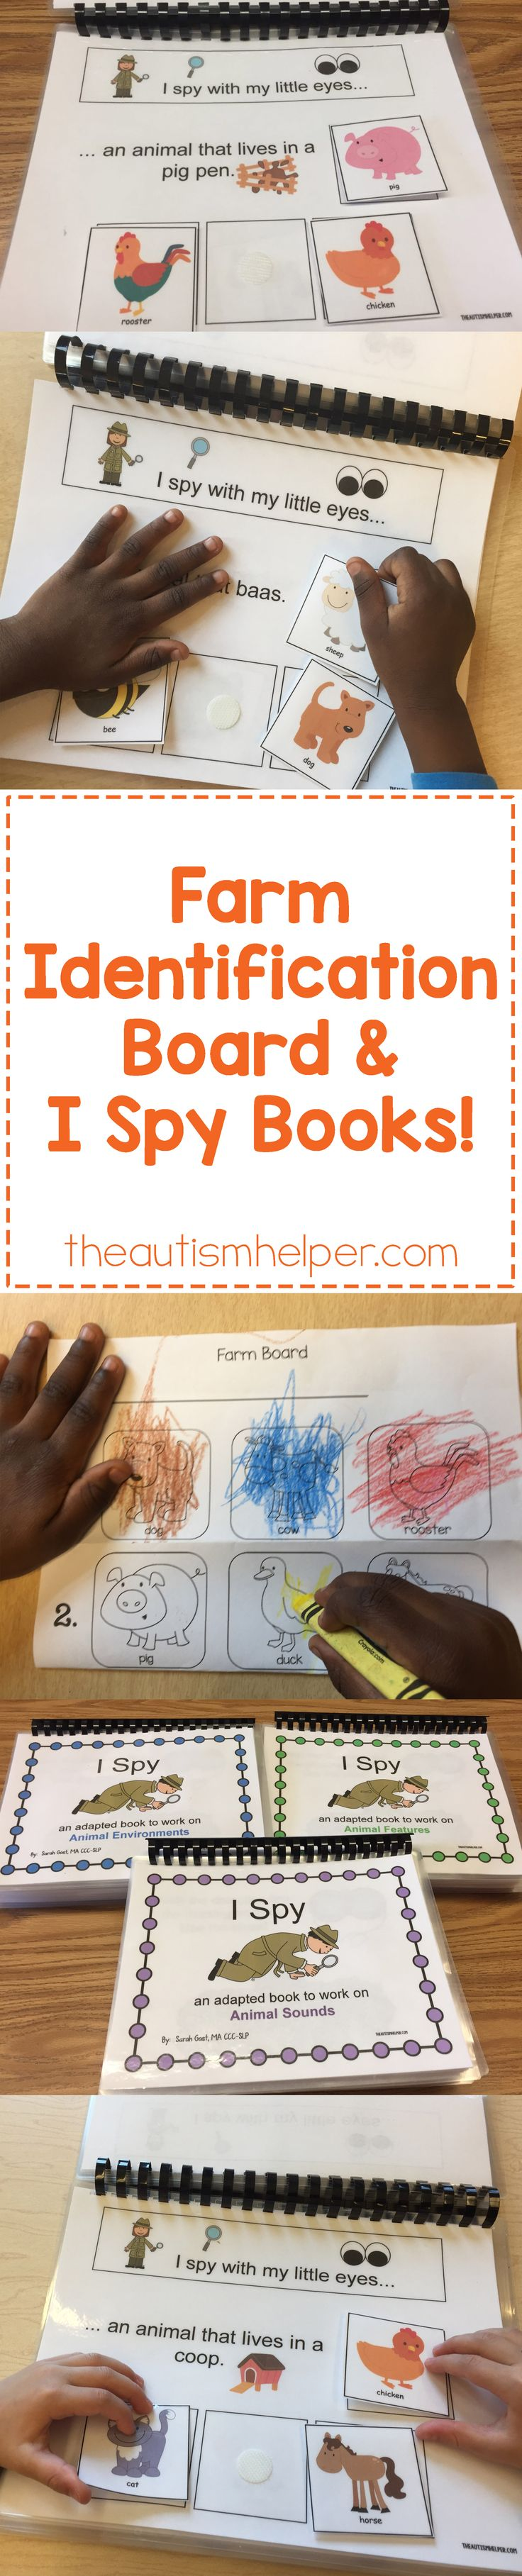 Finish out your week in speech therapy with Sarah's farm-themed Picture Identification Board & I Spy Books! Links to all available products on the blog!! From theautismhelper.com #theautismhelper